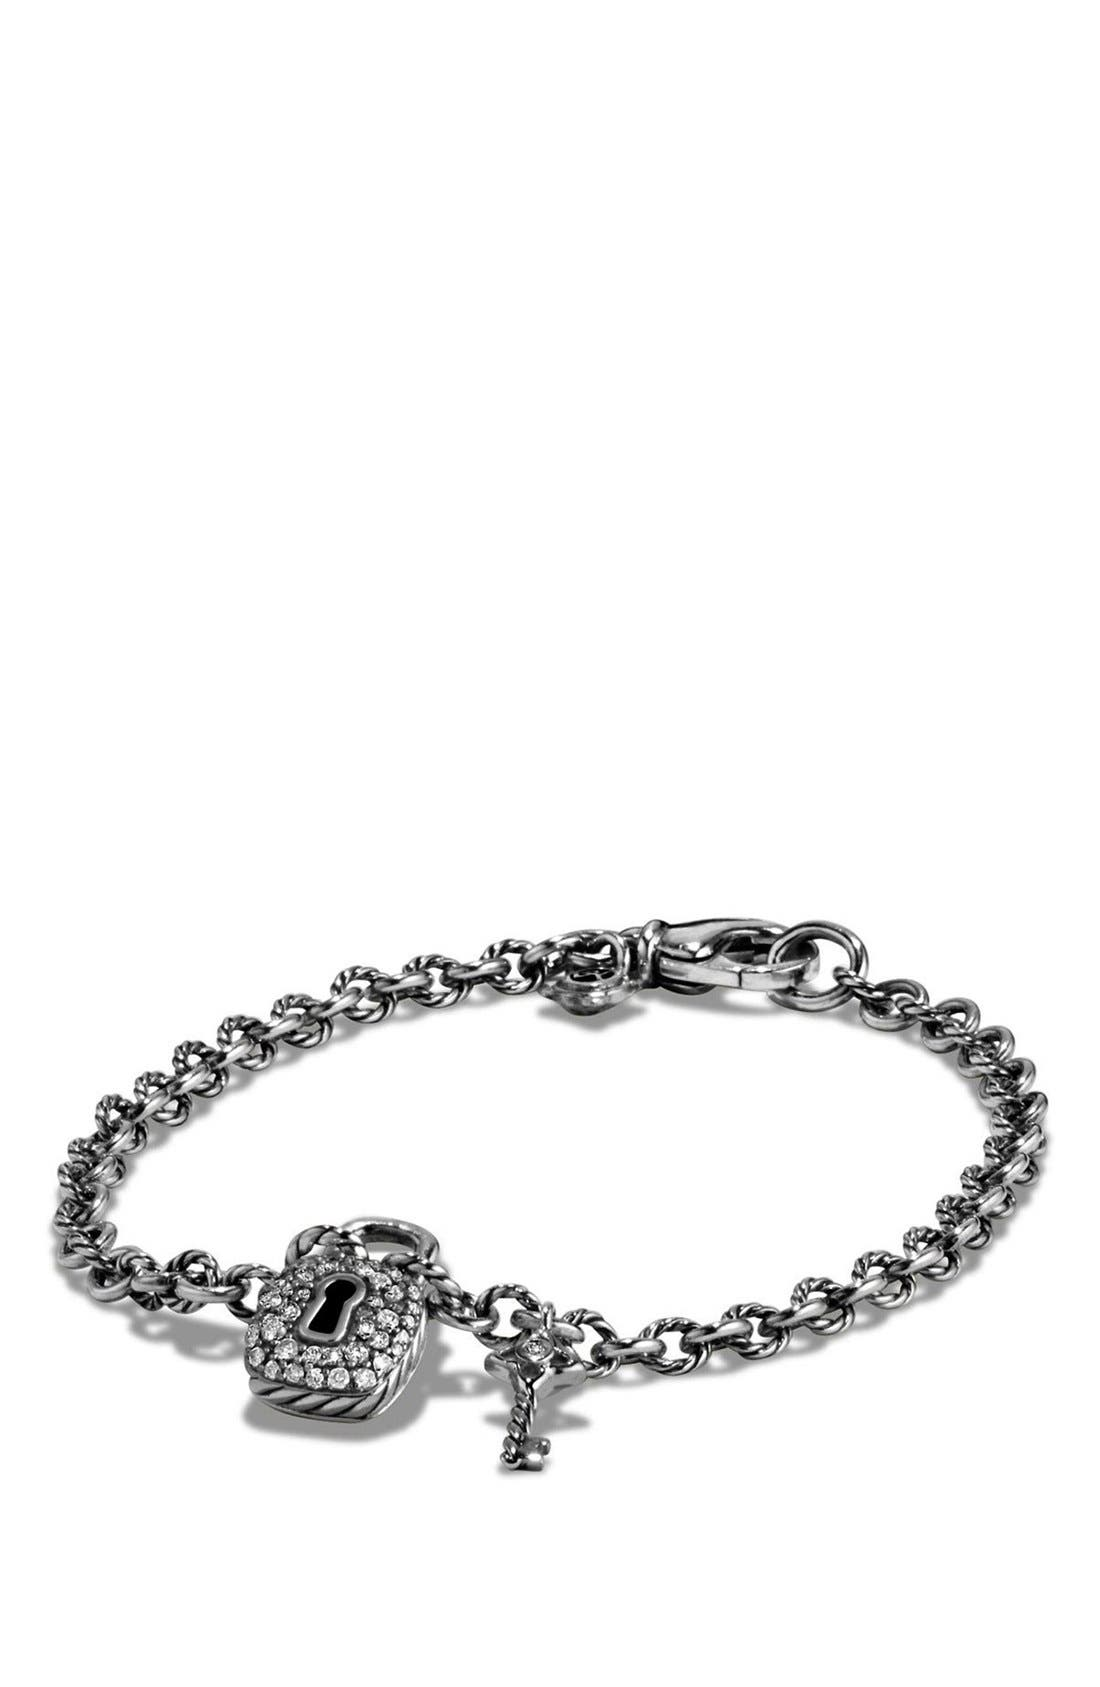 'Cable Collectibles' Lock and Key Charm Bracelet with Diamonds,                             Main thumbnail 1, color,                             SILVER